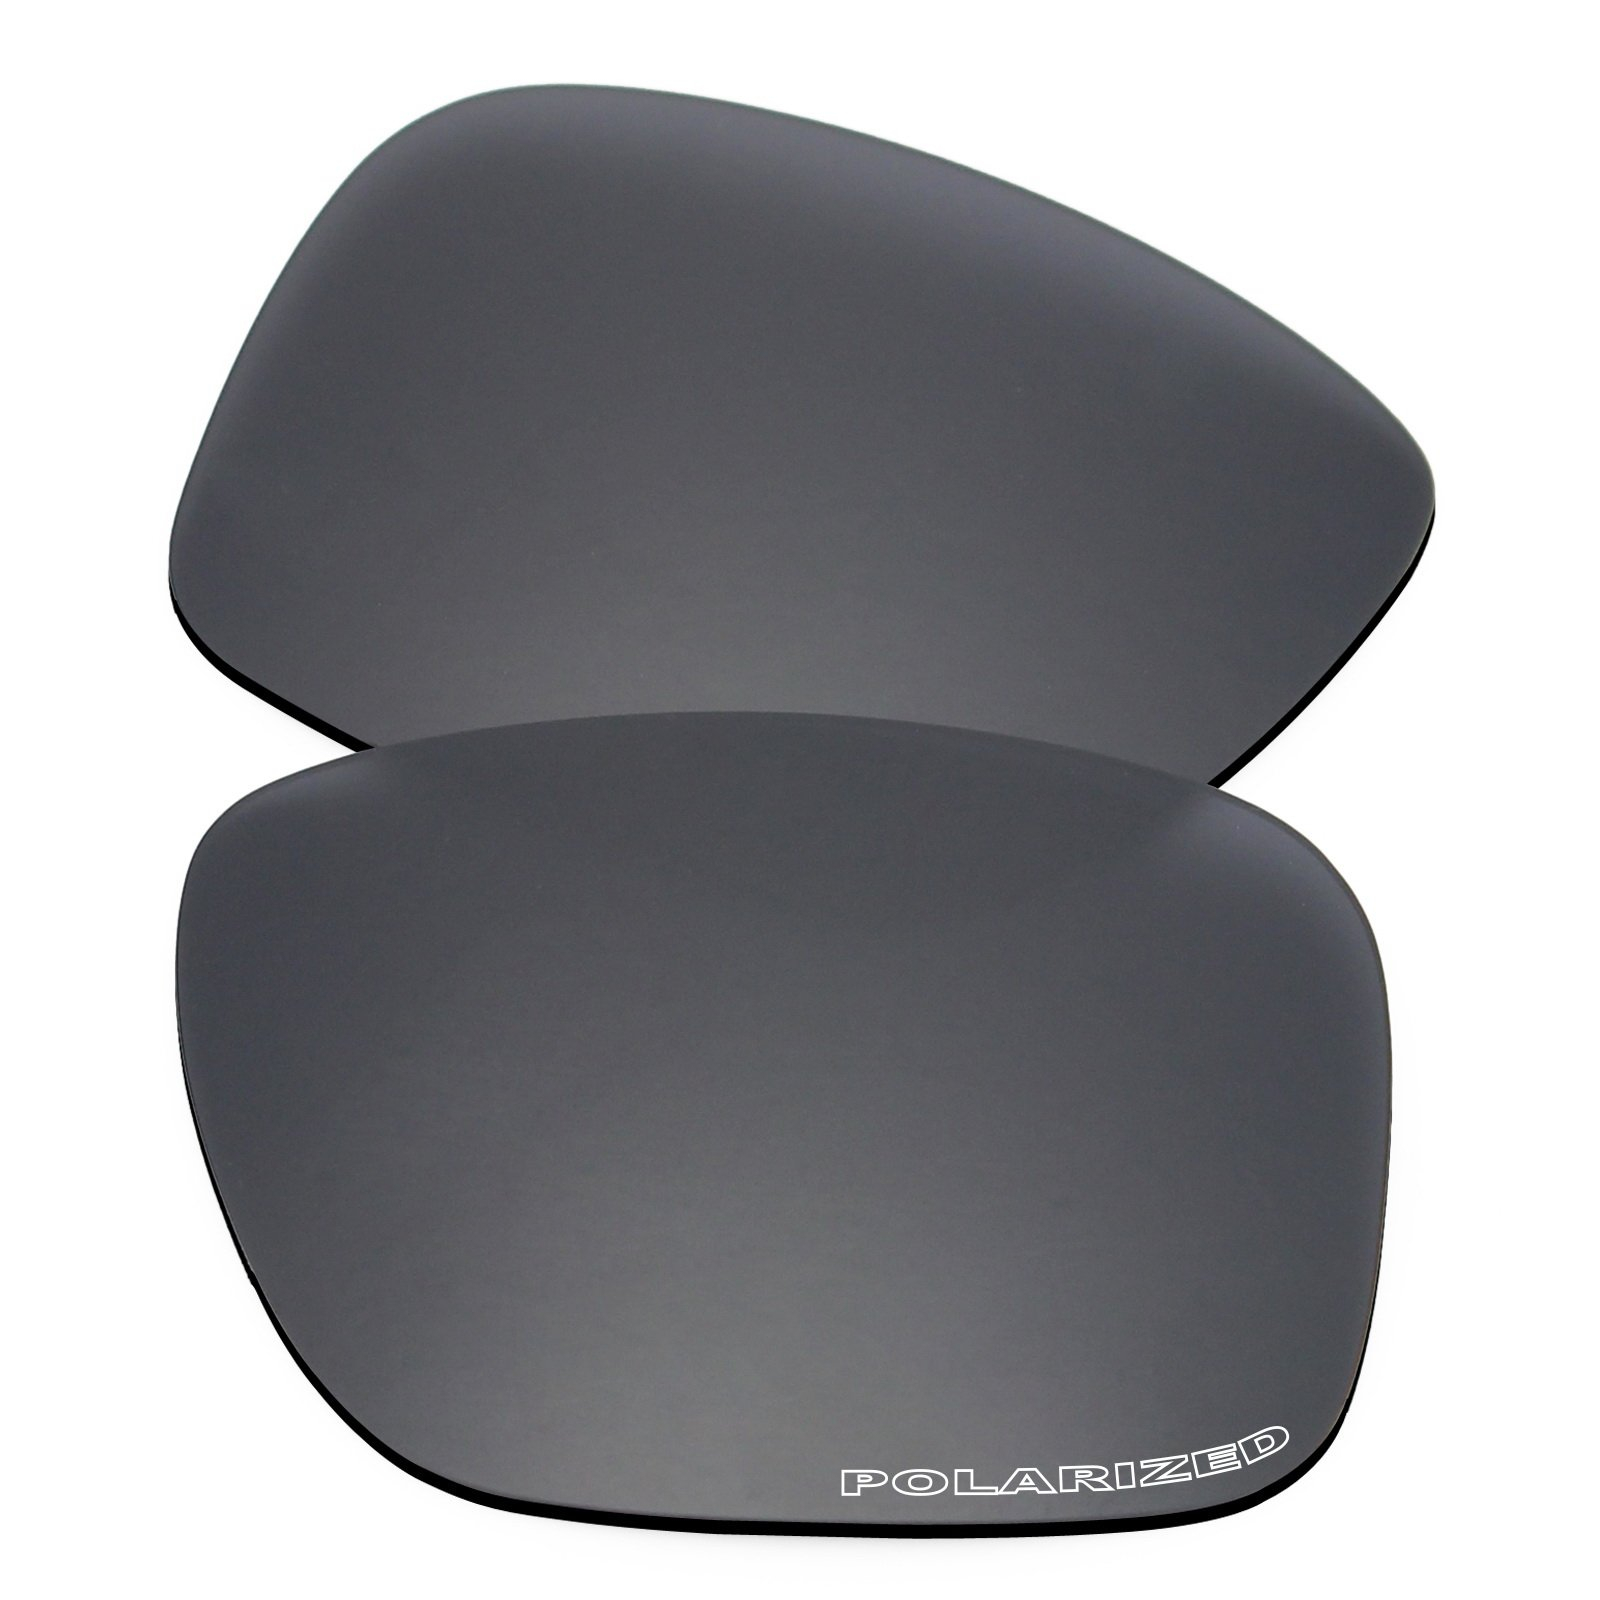 New 1.8mm Thick UV400 Replacement Lenses for Oakley Holbrook Sunglass - Options by Highprecisionoptics